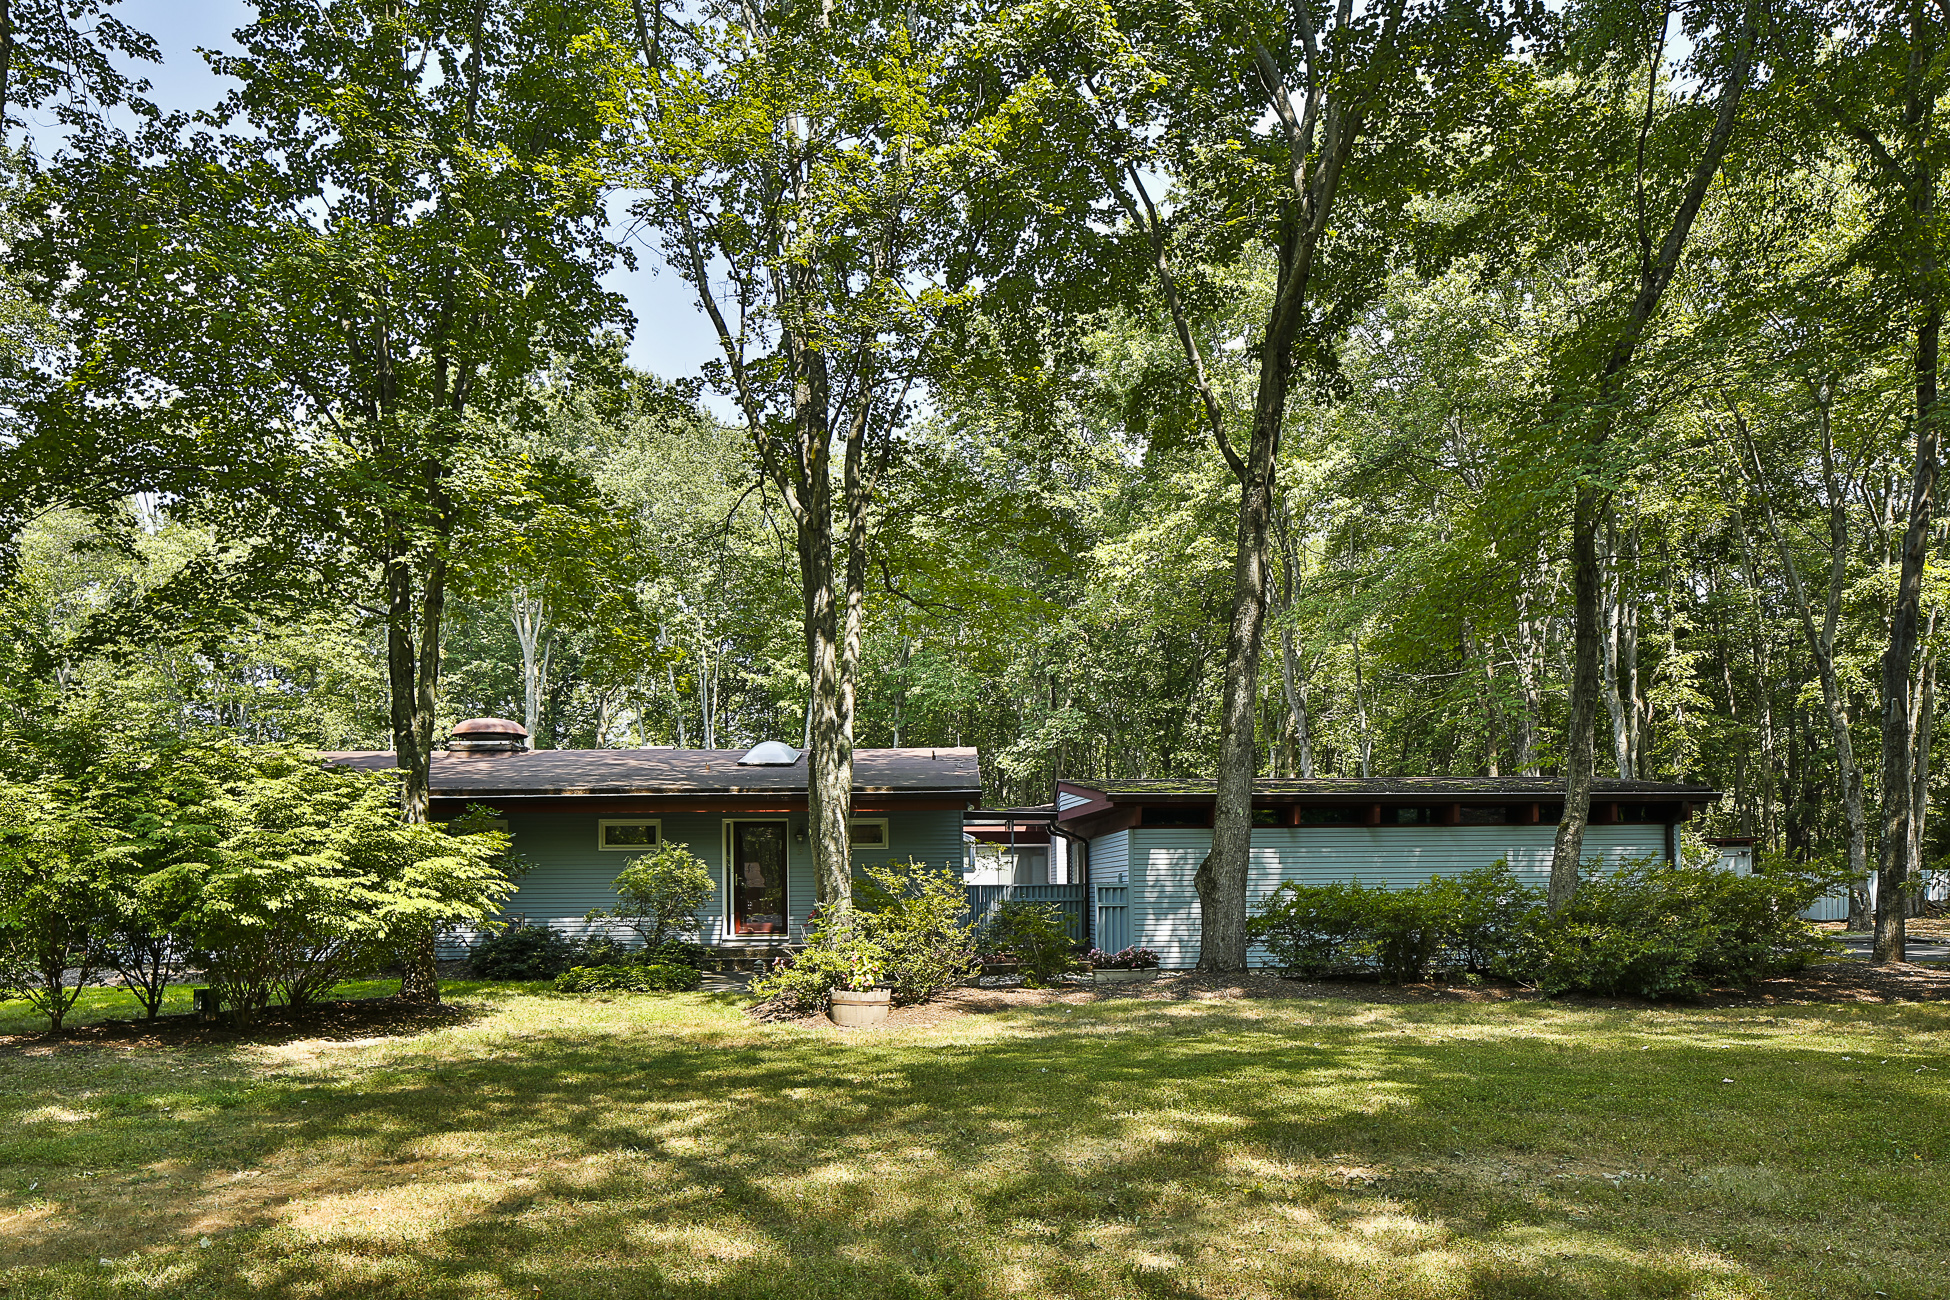 Property For Sale at Loads Of Glass To Enjoy The View - Hopewell Township